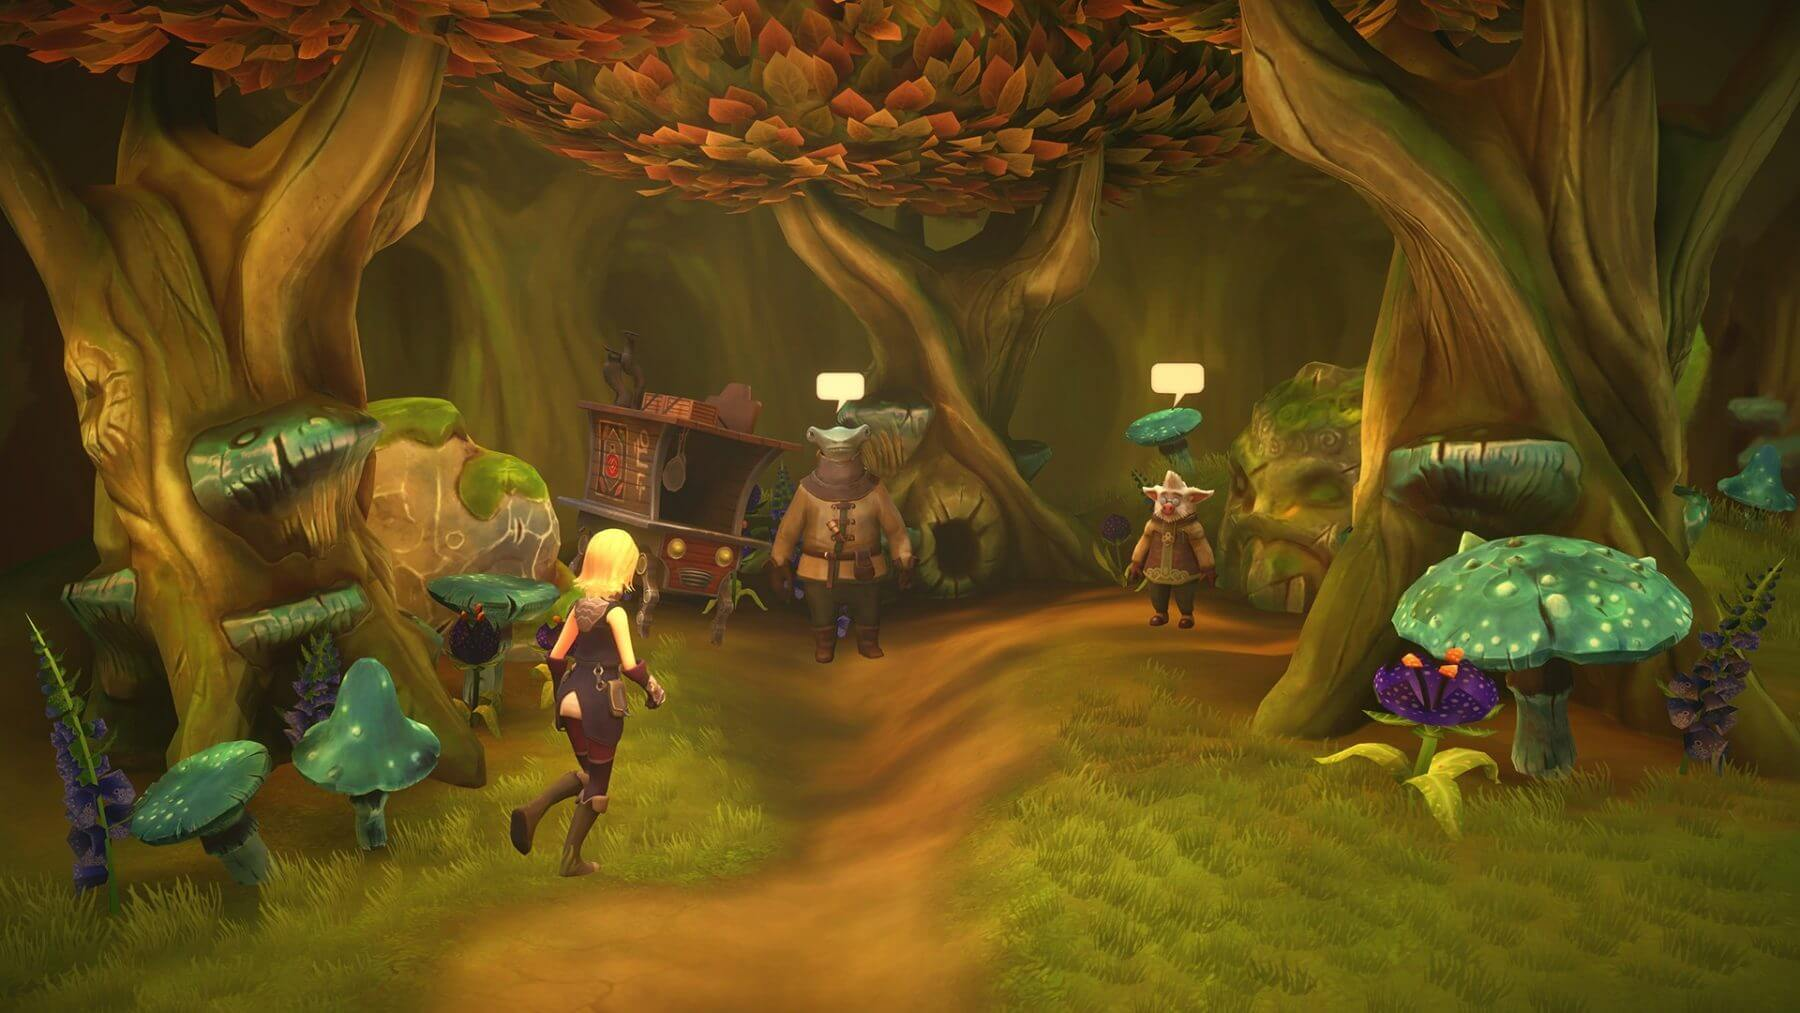 pc,pc gameplay,pc game,earthlock gameplay pc,pc version,rpg game earthlock festival of magic pc,earthlock pc,for pc,pc 60fps,pc games,pc gaming,earthlock: festival of magic pc,earthlock - festival of magic pc,earthlock: festival of magic gameplay pc,pc 60fps gameplay,earthlock pc game,earthlock pc gameplay,earthlock pc gameplays,earthlock festival of magic pc,earthlock festival of magic pc games unity z4,descargar earthlock festival of magic para pc,pcgame,pcgames